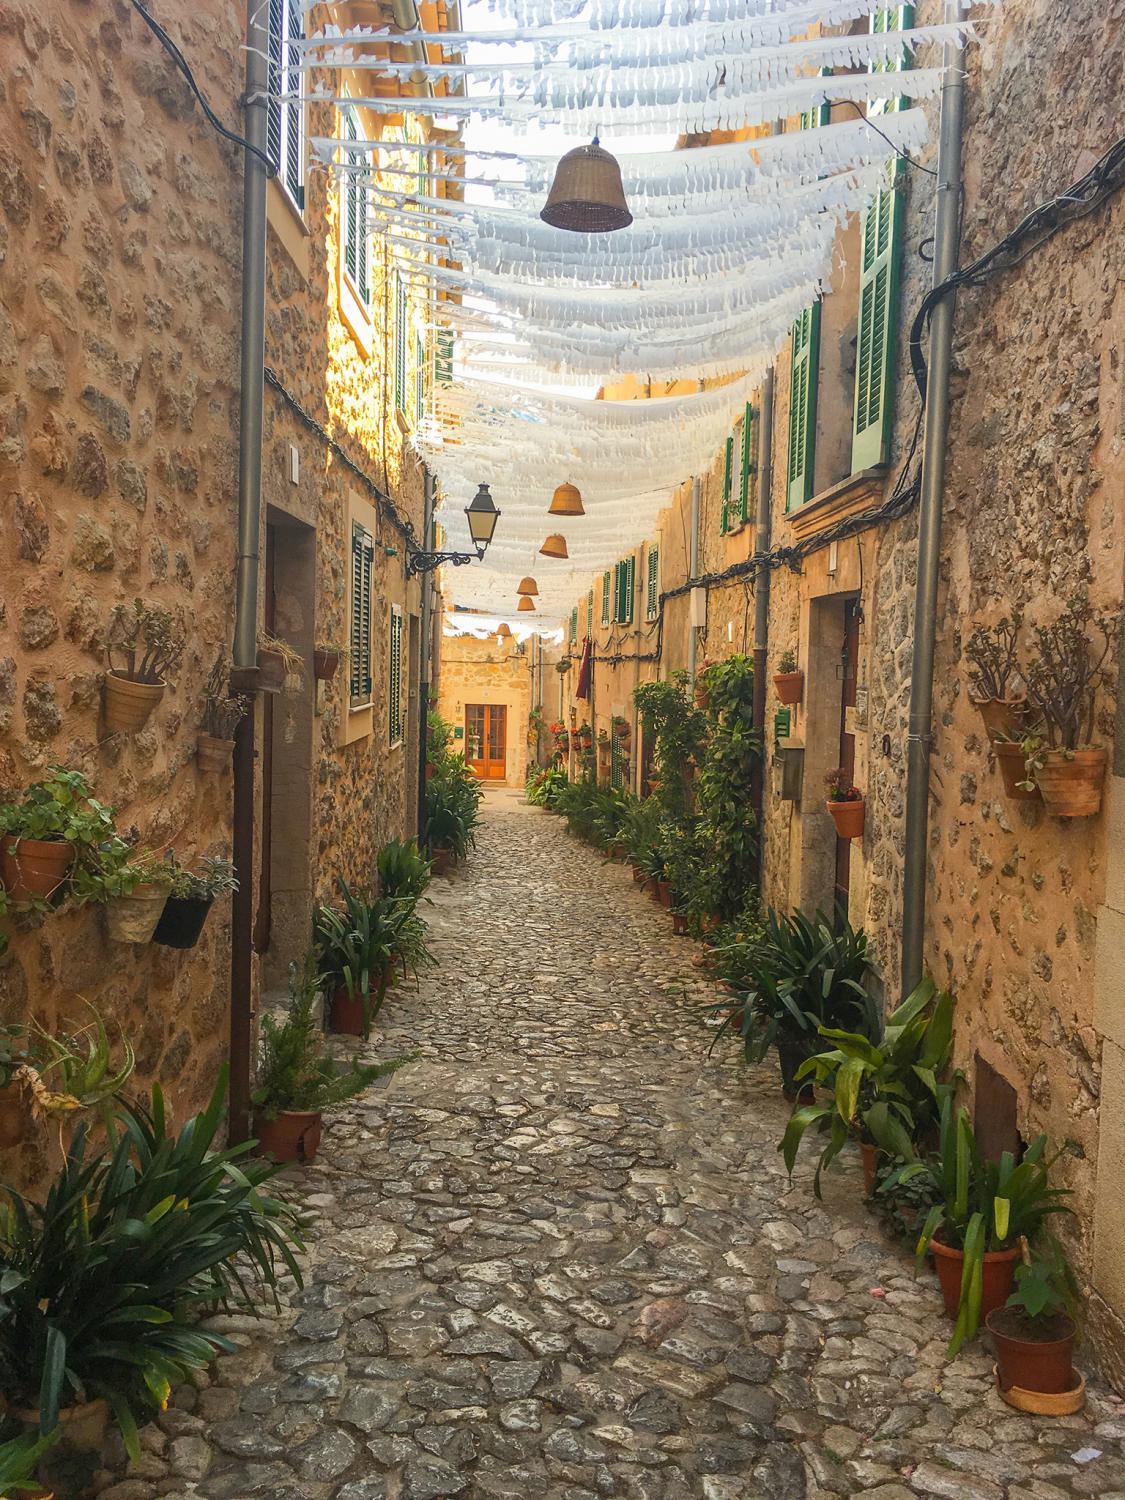 Carrer de na Búger in the village of Valldemossa, Mallorca